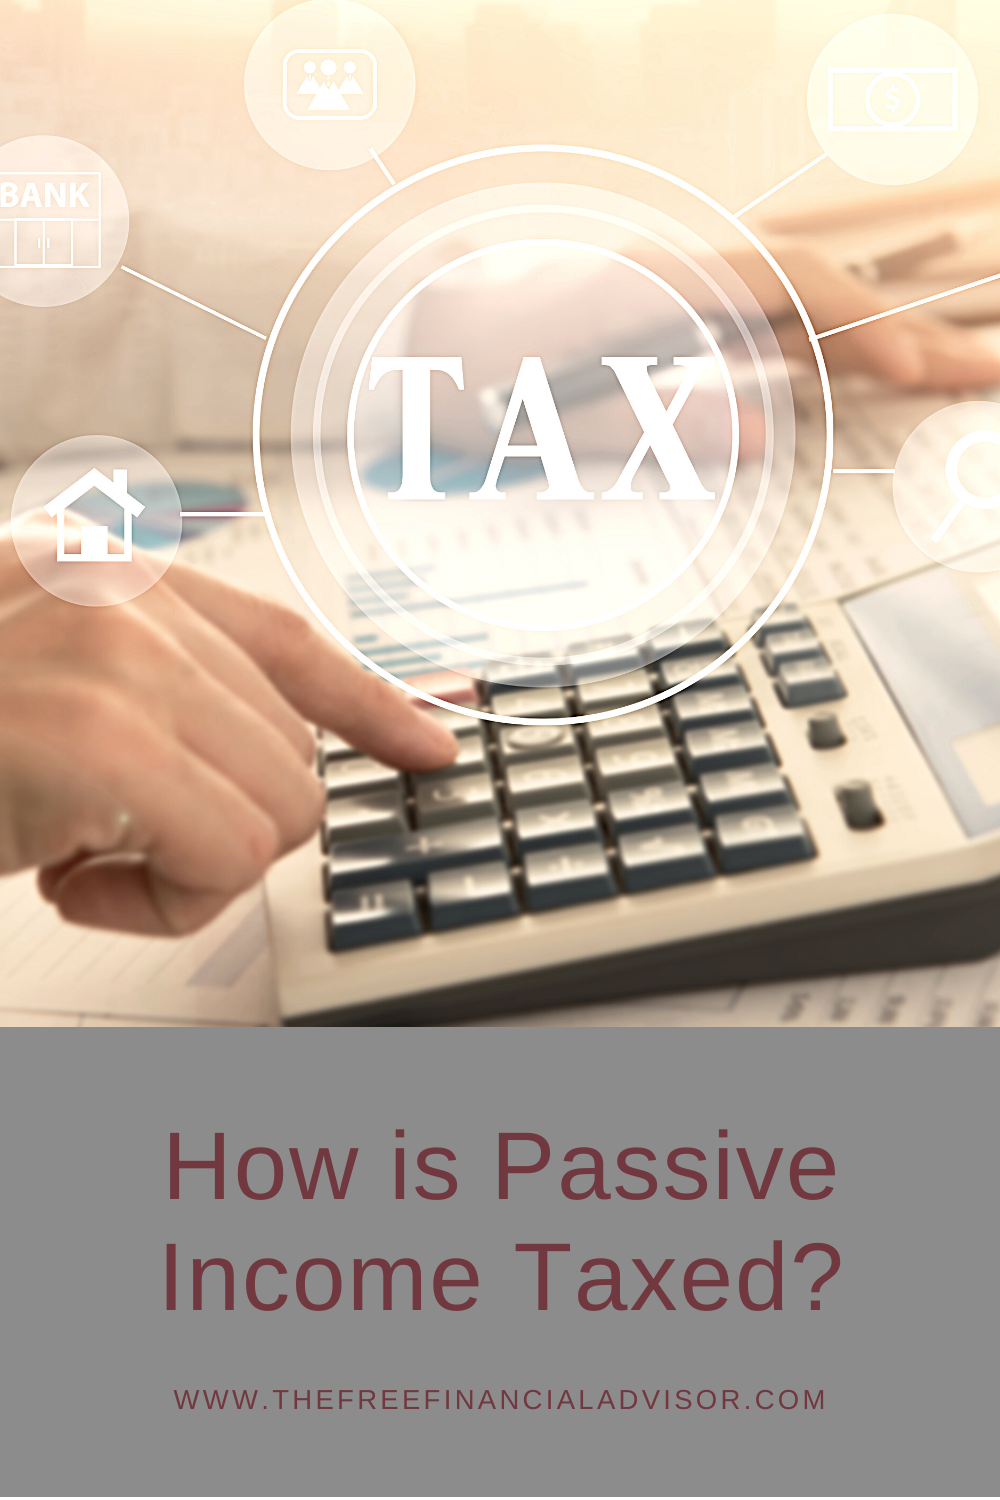 How is Passive Income Taxed